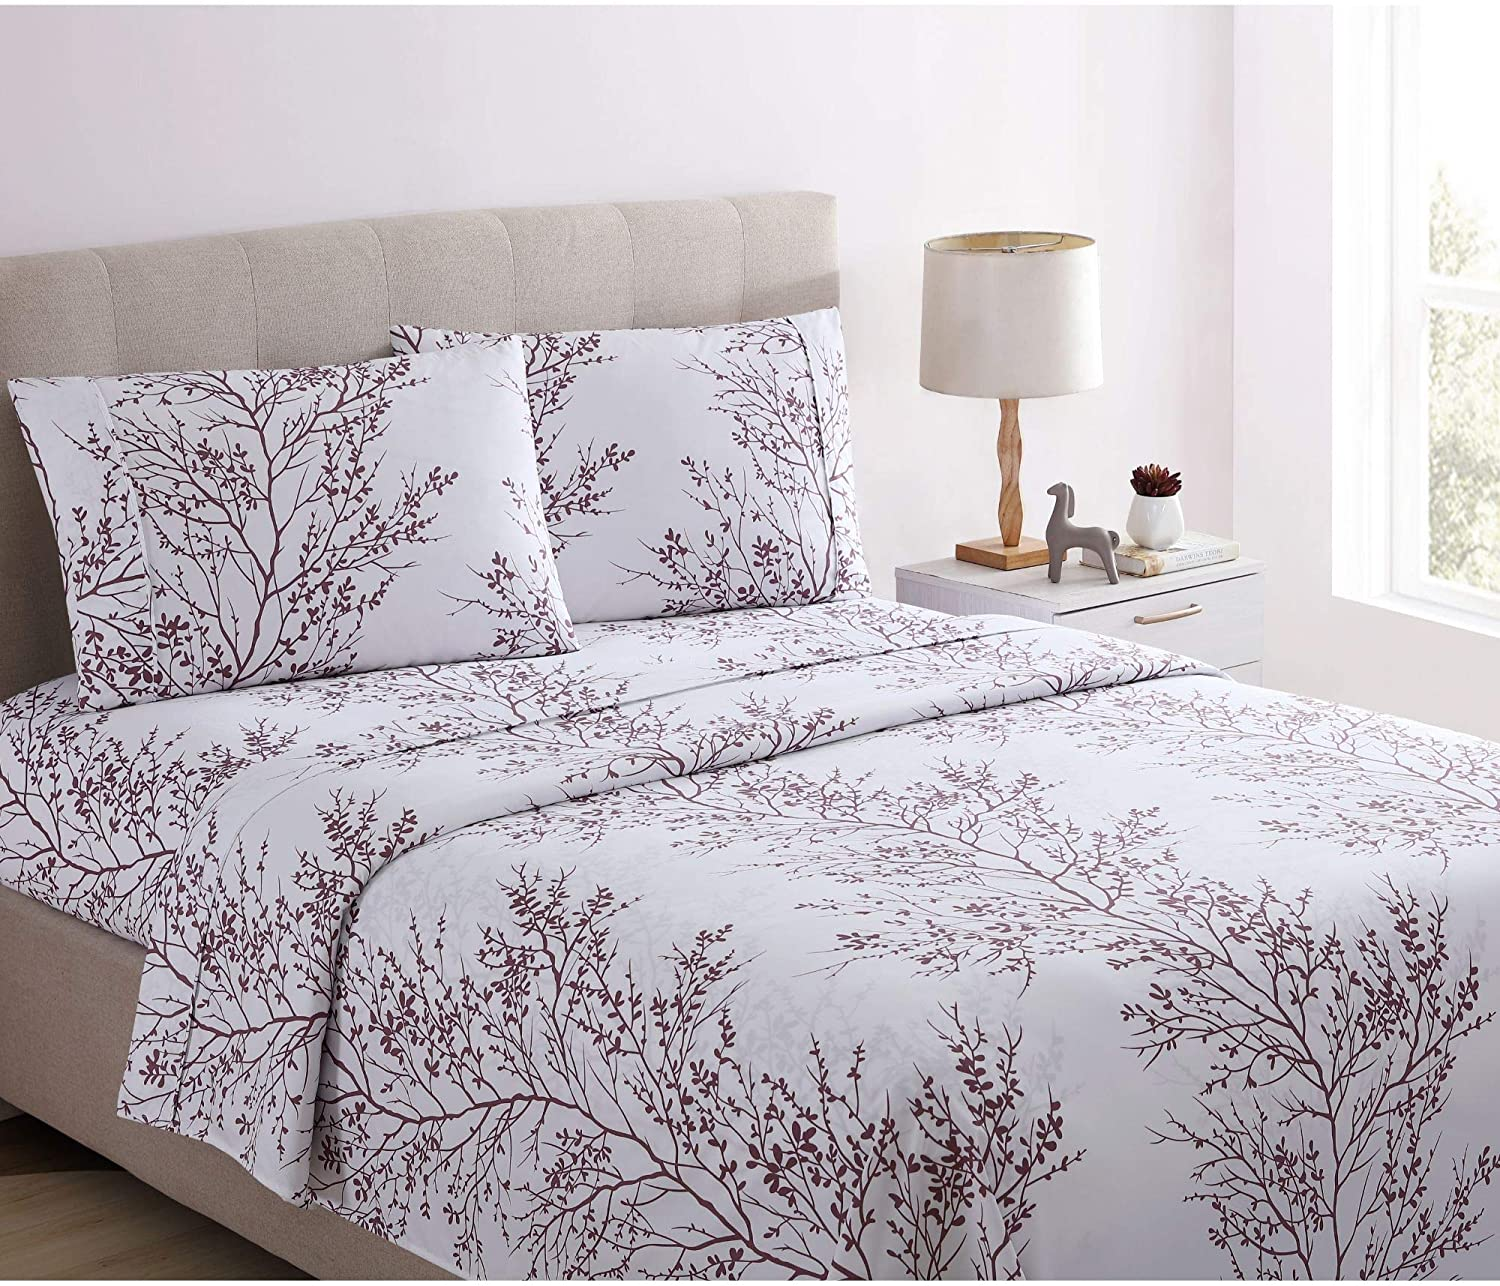 15 Bed Linen Ideas To Maximize The Look Of Your Bed Talkdecor